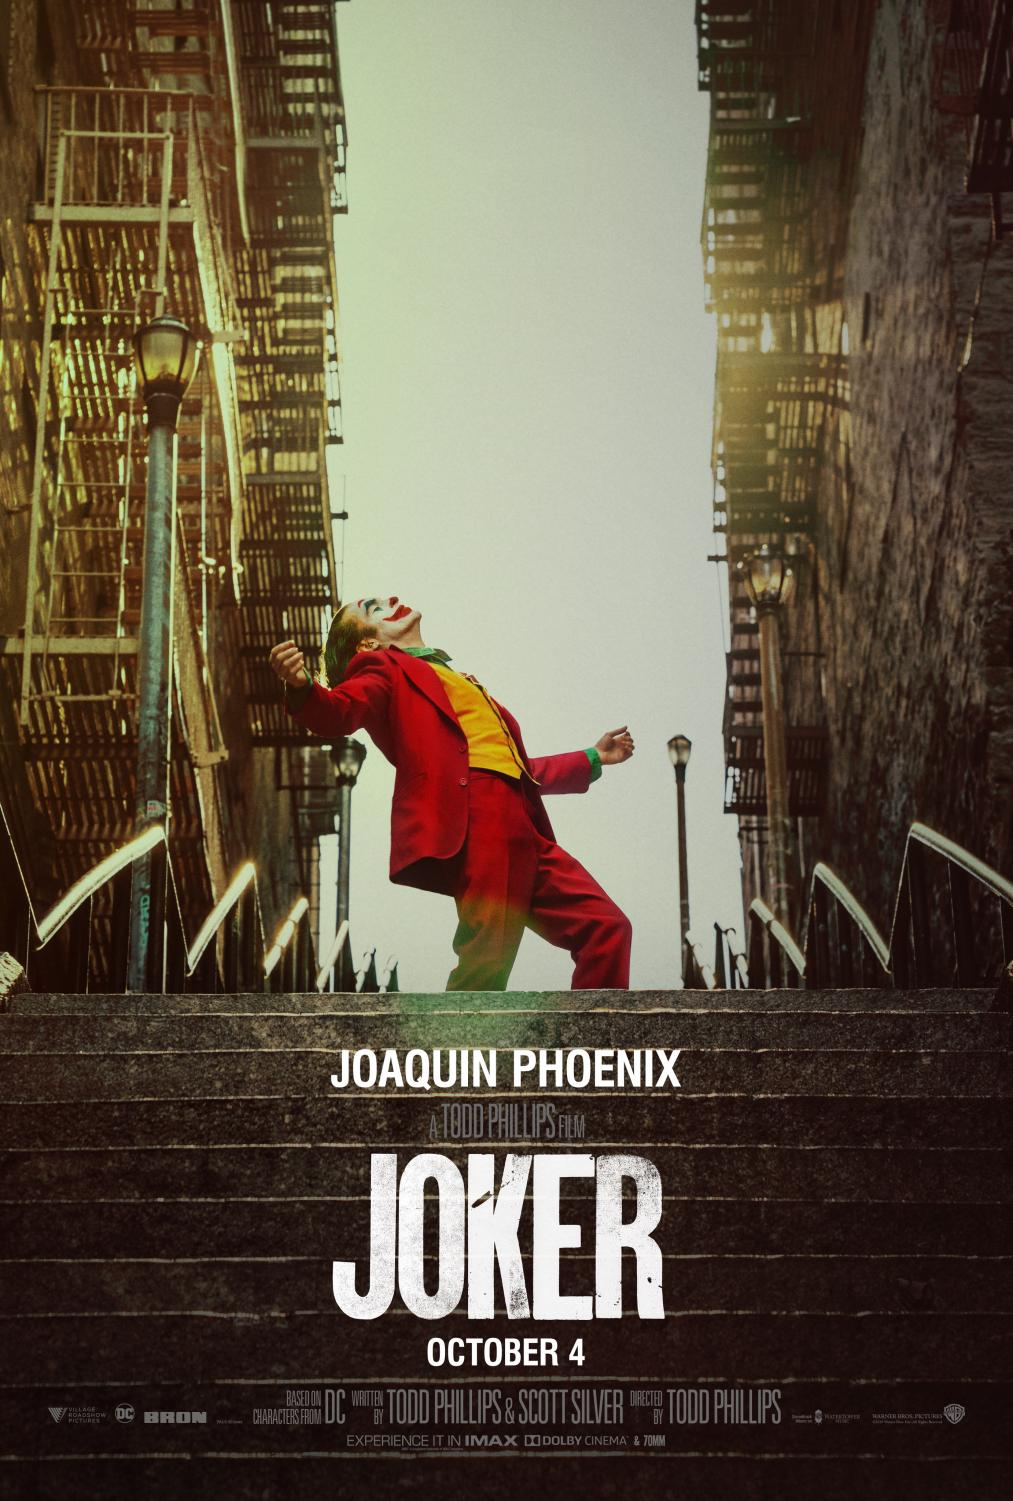 The Joker movie is in theaters now.